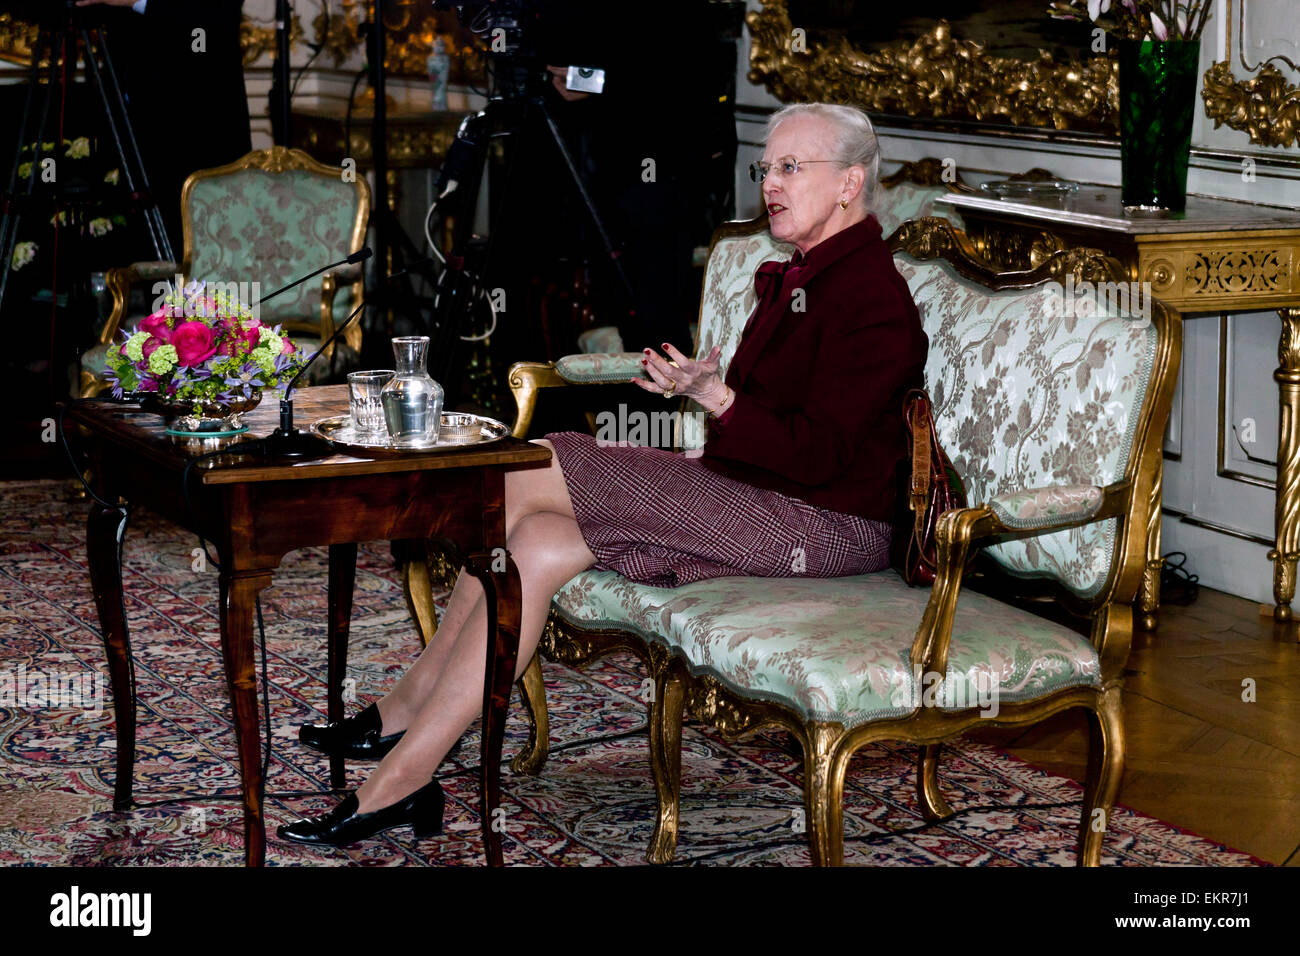 Fredensborg, Denmark. 13th April, 2015. H.M. Queen Margrethe of Denmark, holds a press conference prior to her seventy - Stock Image